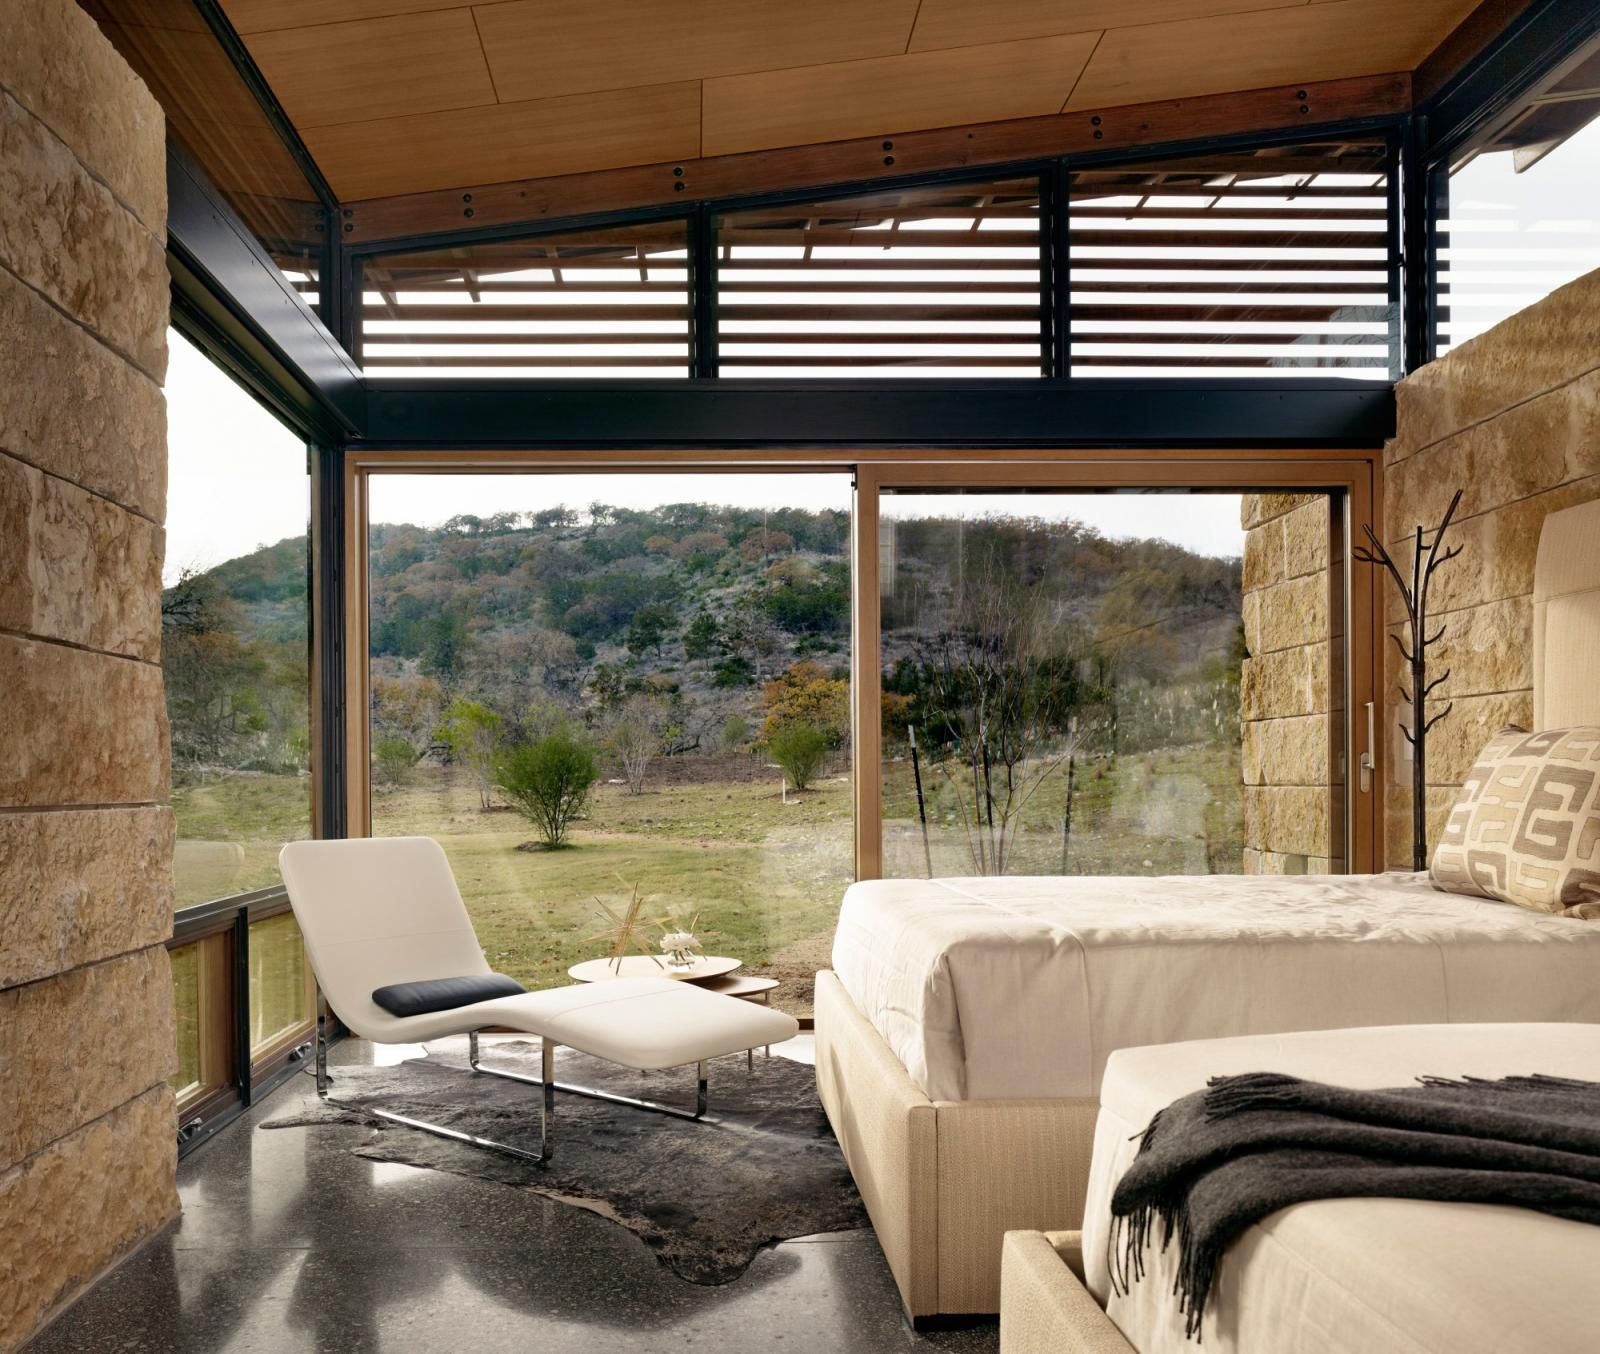 1000+ images about anch rchitecture on Pinterest Lakes ... - ^